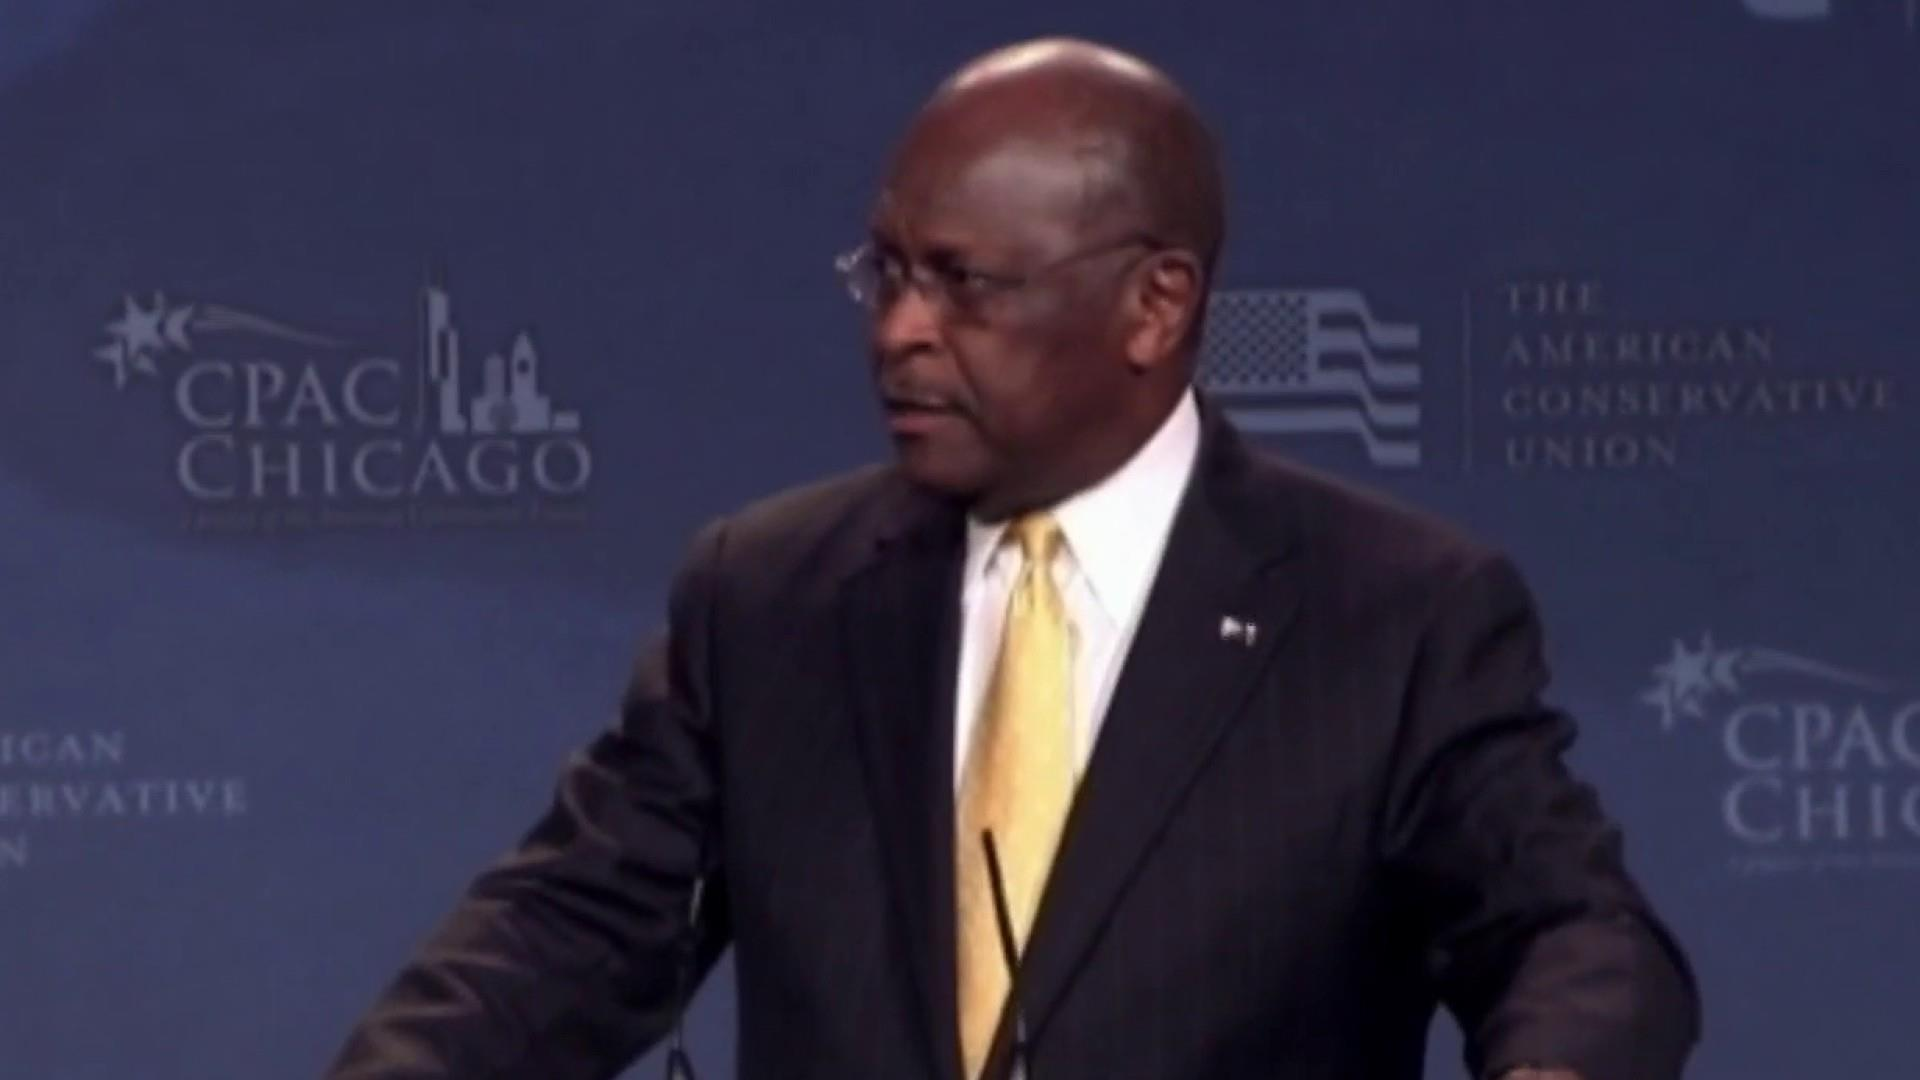 John Harwood: Herman Cain is 'a reality show appointment' for Fed